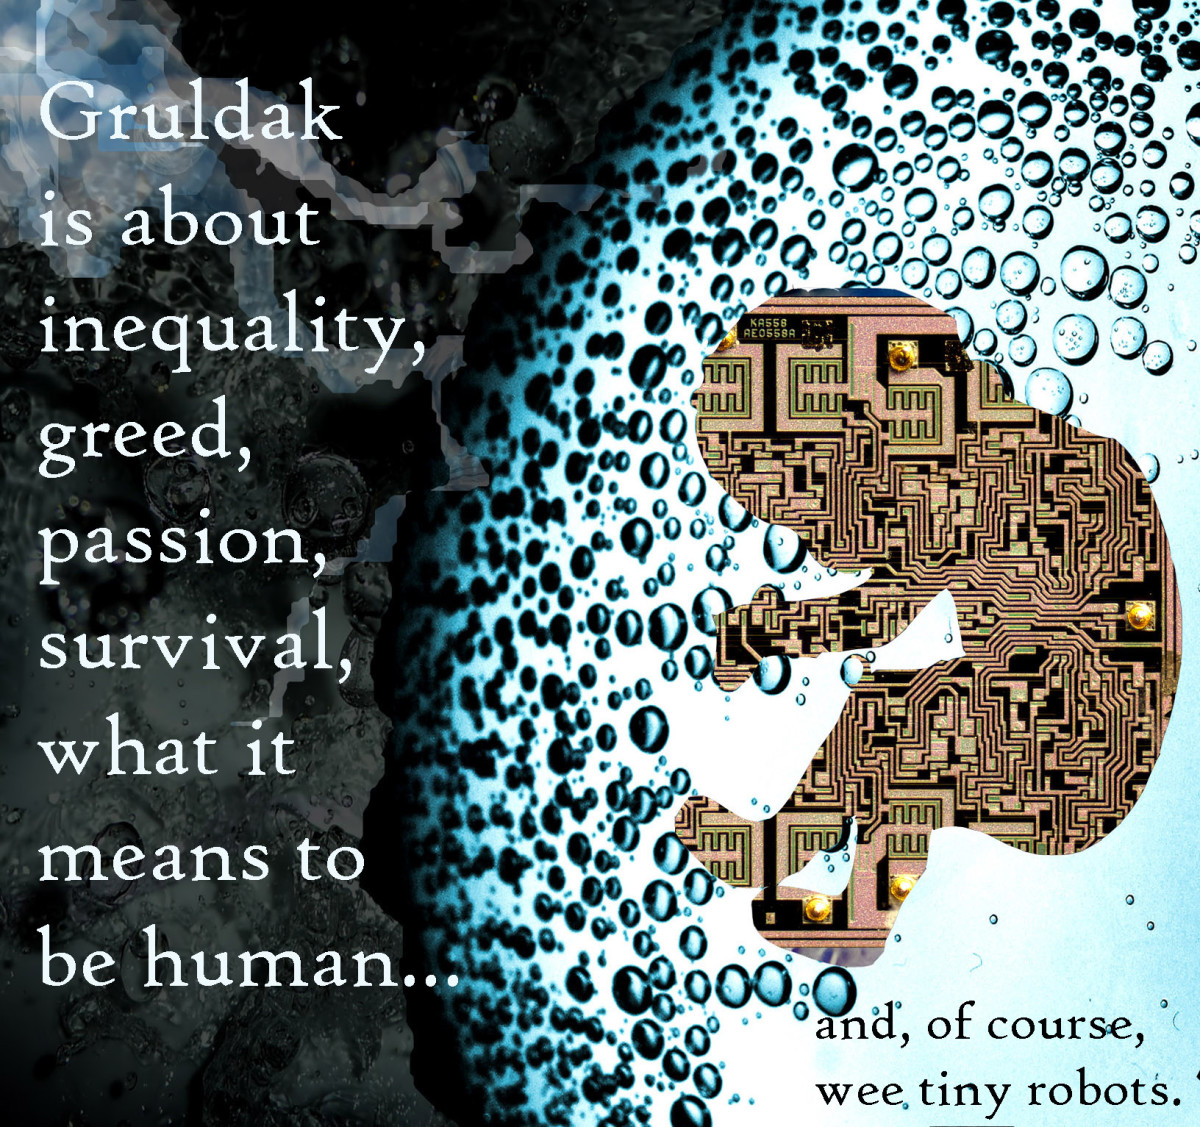 Circuit-board fetus floating in a bubble of carbonated water in space, art for Gift of the Gruldak, a serialized science fiction novel that's free to read online.